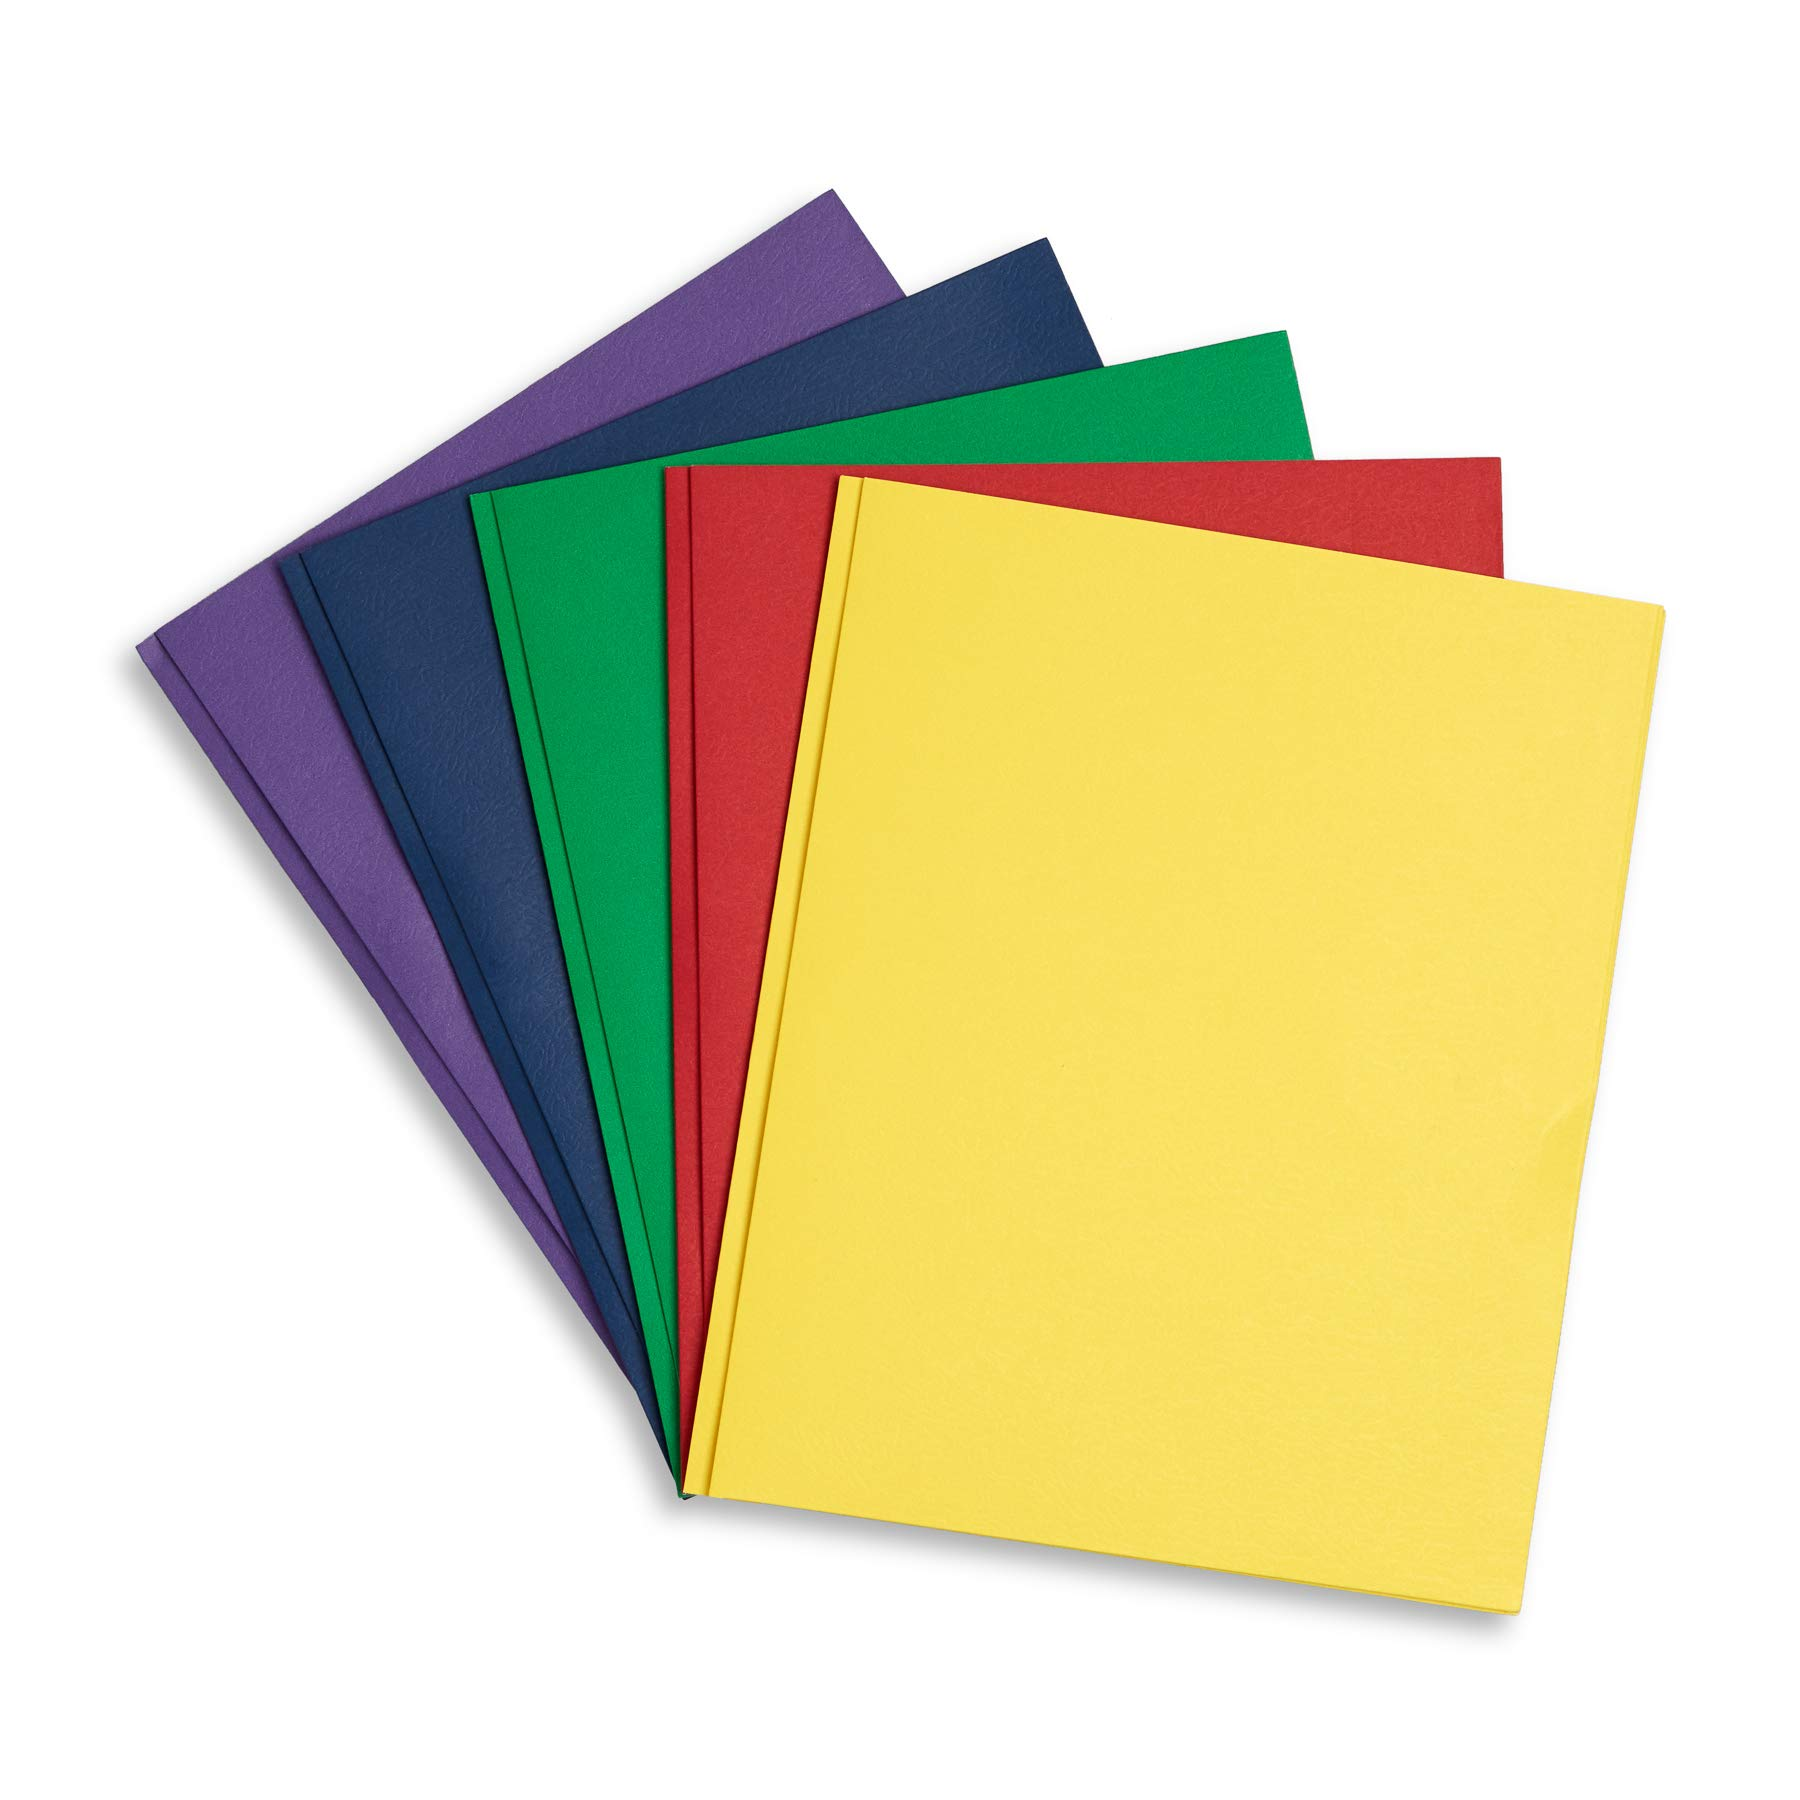 Blue Summit Supplies 100 Two Pocket Folders with Prongs, Designed for Office and Classroom Use, Assorted 5 Colors, 100 Pack Colored 2 Pocket 3 Prong Folders by Blue Summit Supplies